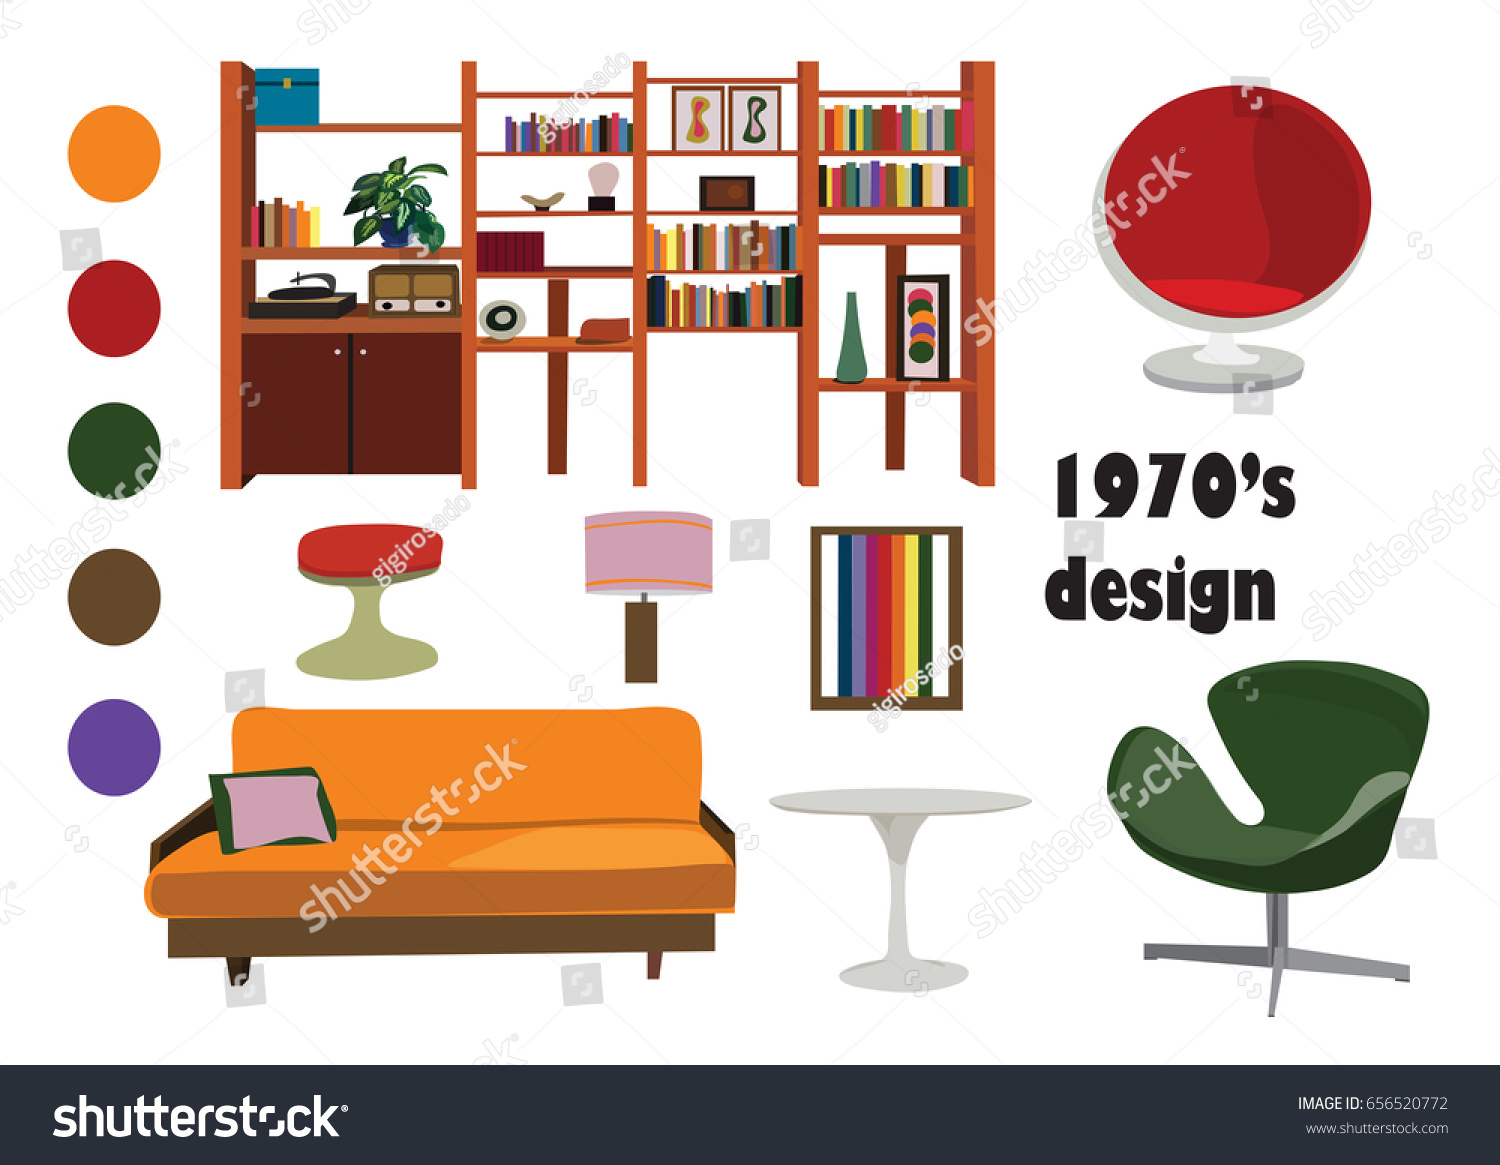 1970s 70s interior design vector elements stock vector for Apartment design vector